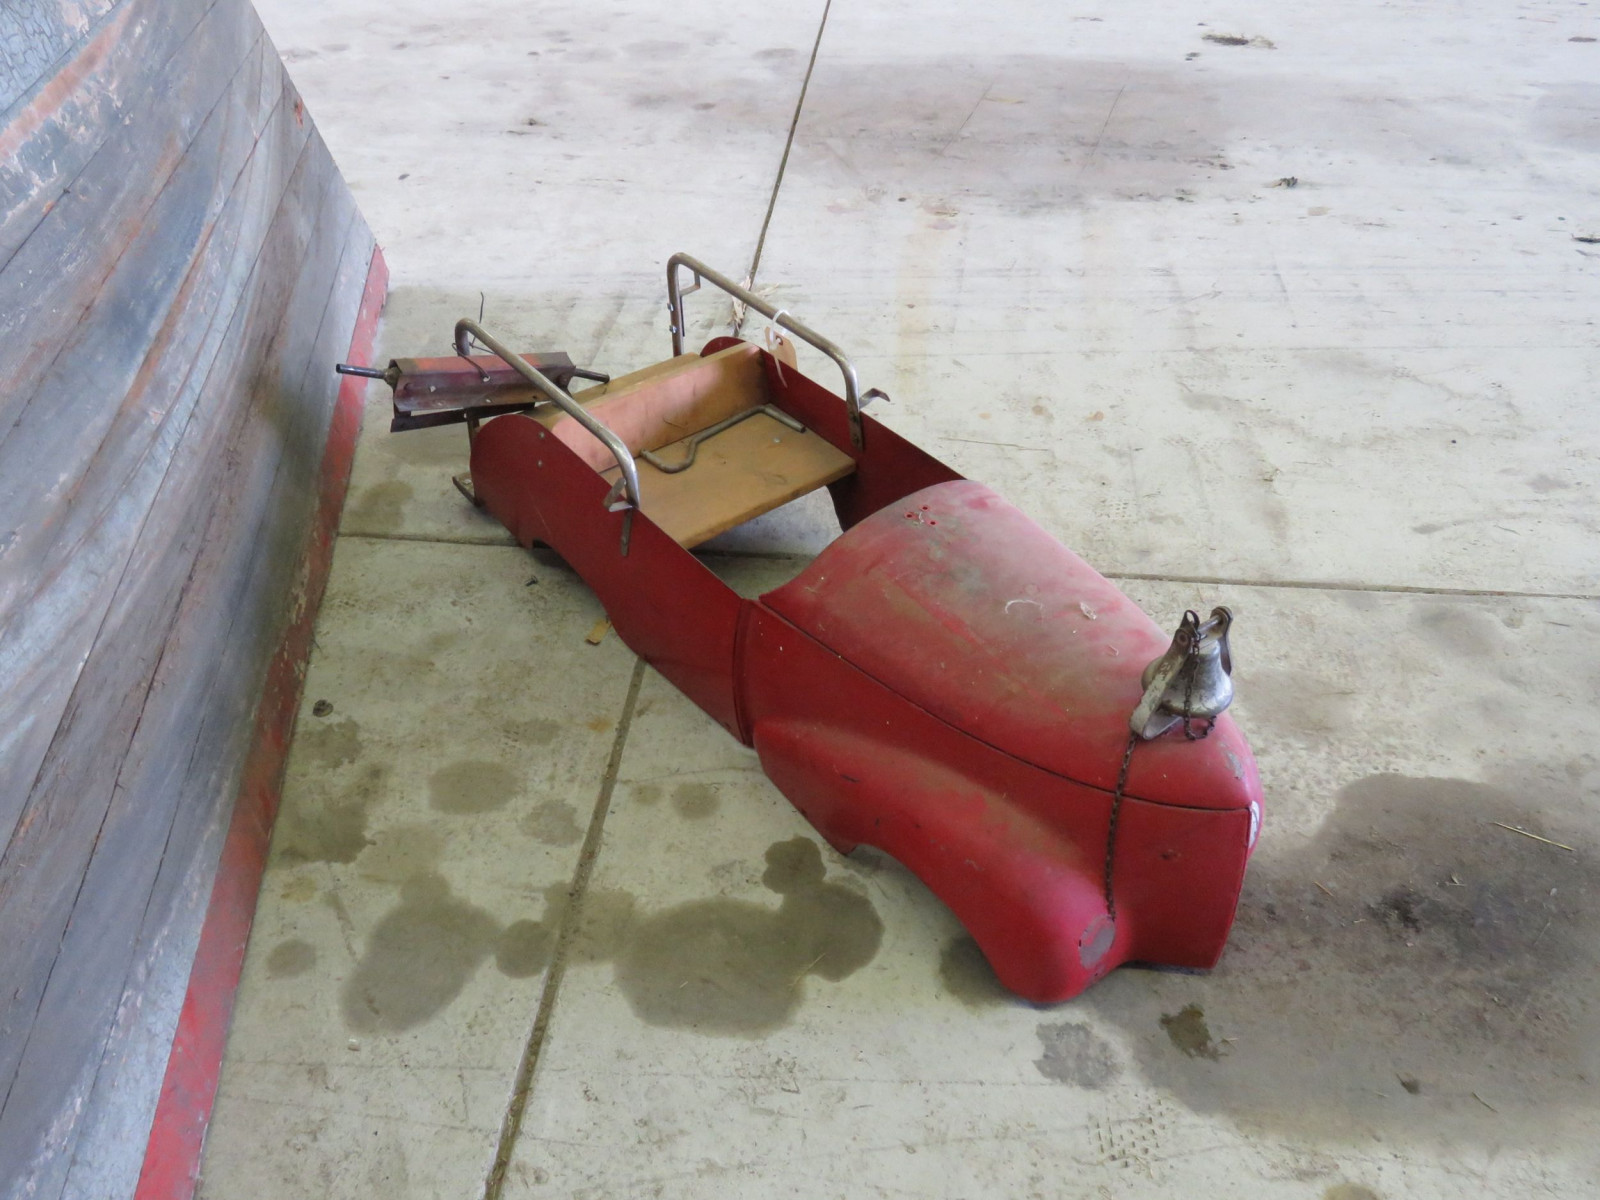 Vintage Pedal Car Body for Restore - Image 2